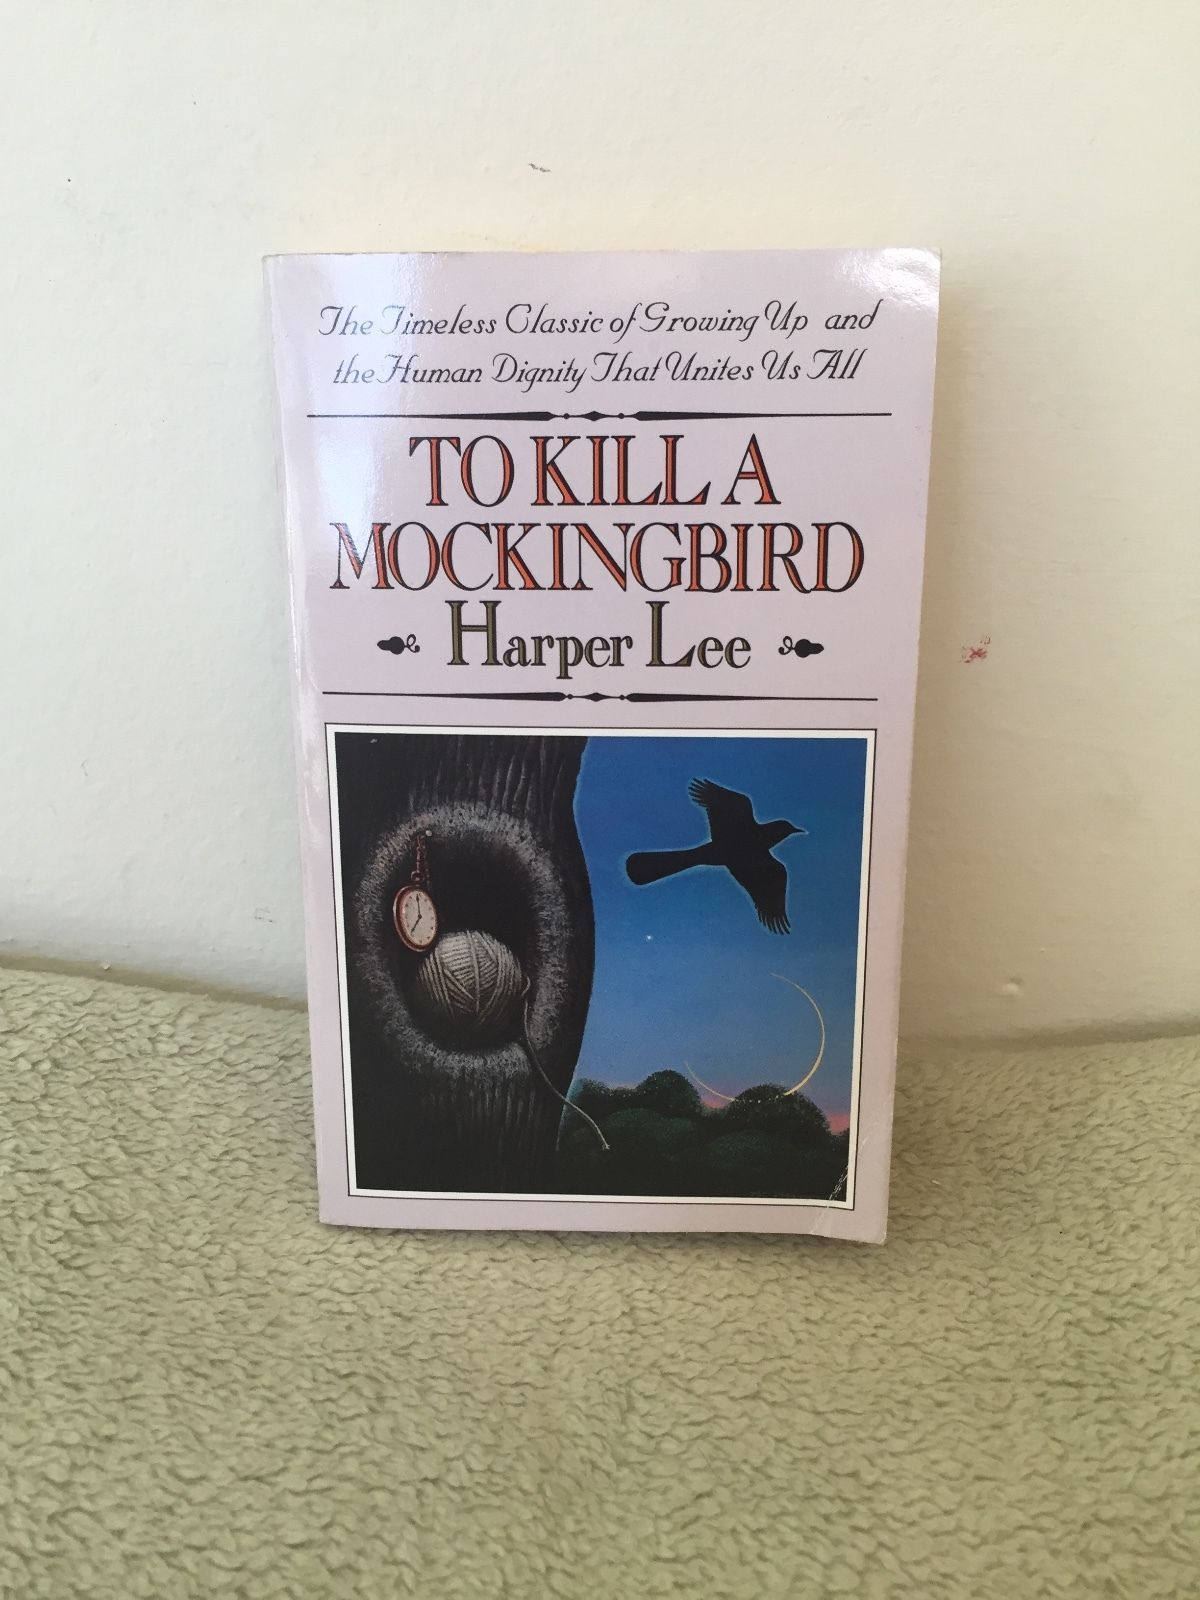 basic lessons in human nature in to kill a mockingbird by harper lee Boo radley essay examples 44 total results an analysis of the character of boo radley in to kill a mockingbird, a novel by harper lee 1,264 words 3 pages the.